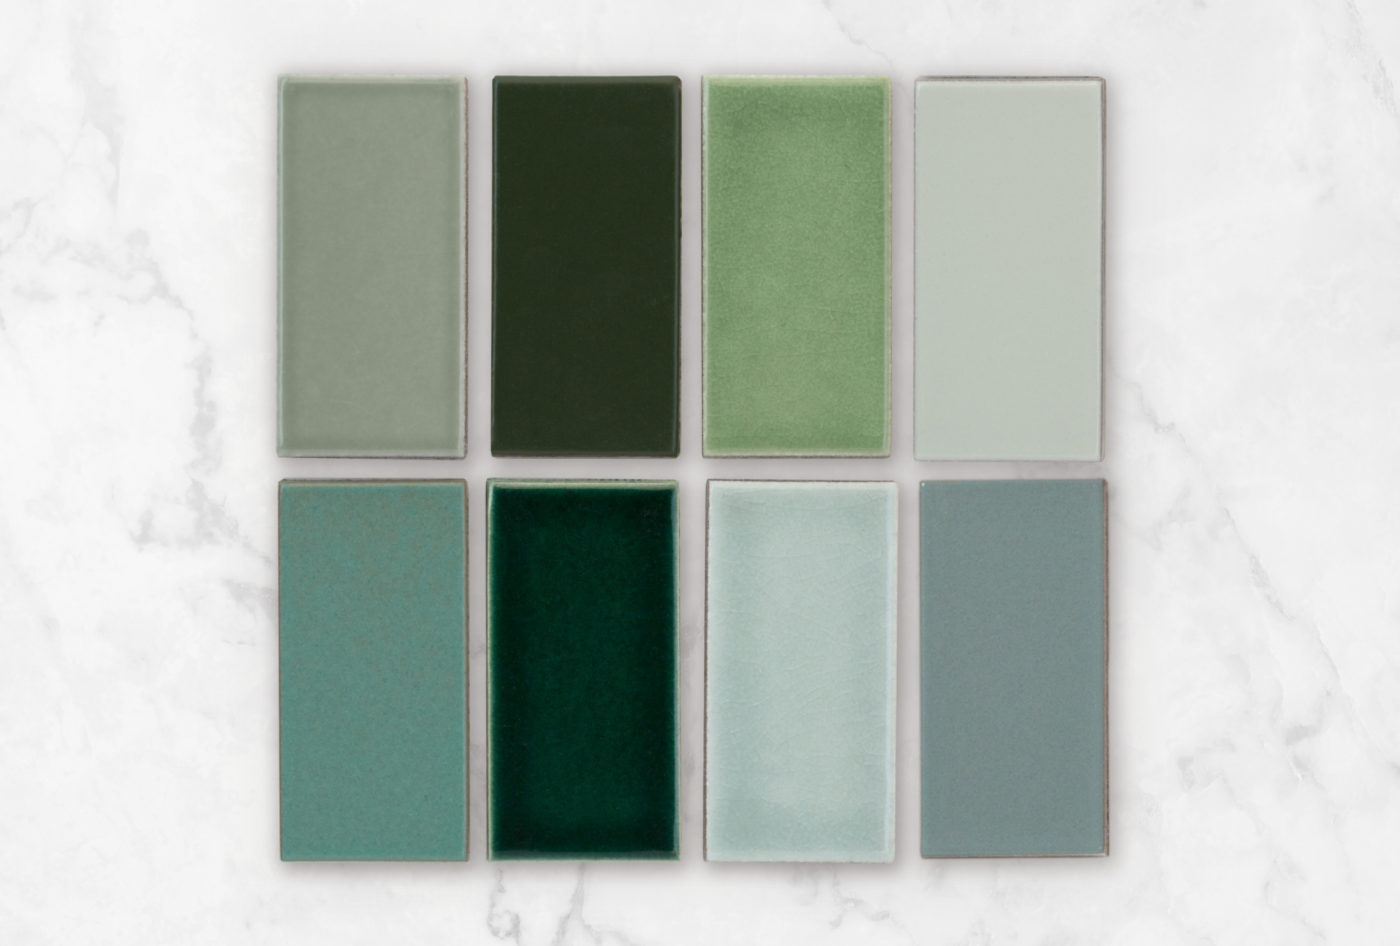 2020 Q1 Photo Fireclay Favorites Greens All Color Samples Rosemary Hunter Green Kelp Oyster Shell Tidewater Venetian Green Salton Sea Flagstone